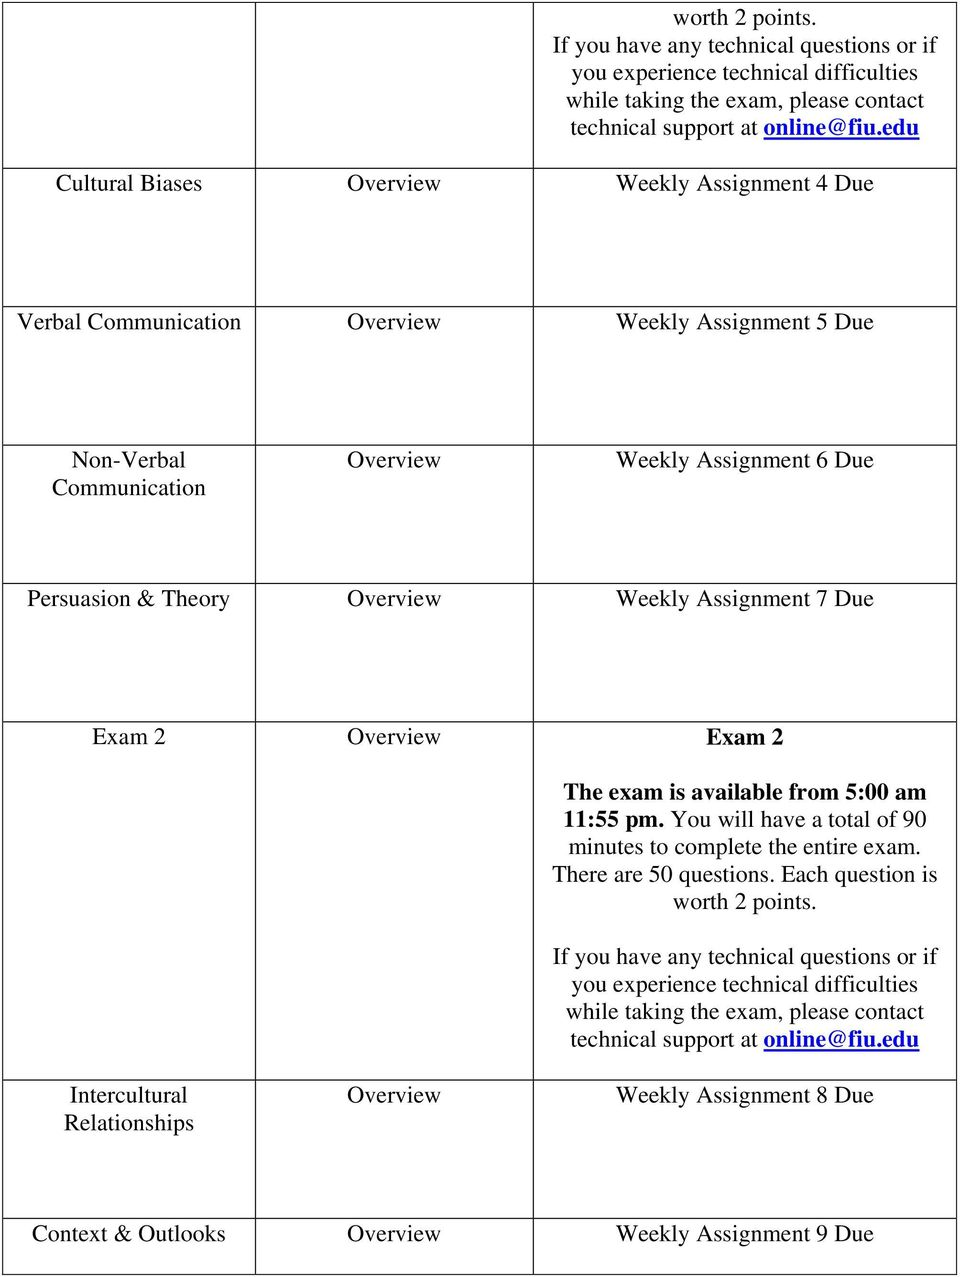 Weekly Assignment 7 Due Exam 2 Overview Exam 2 The exam is available from 5:00 am 11:55 pm. You will have a total of 90 minutes to complete the entire exam. There are 50 questions.